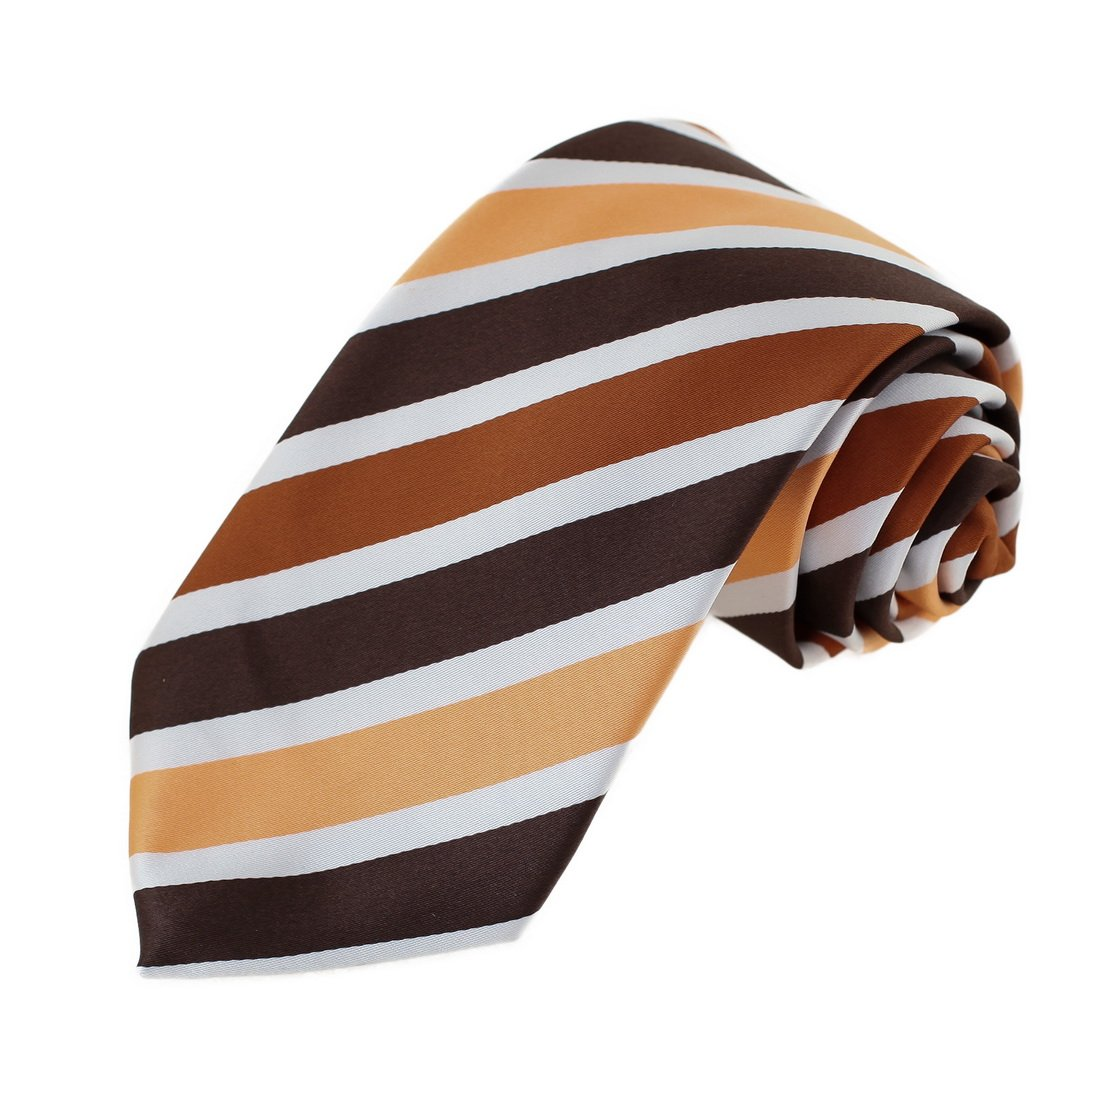 EAGA0150 Brown Orange Striped Microfiber Mens Tie Fine Design Extra Long Tie By Epoint